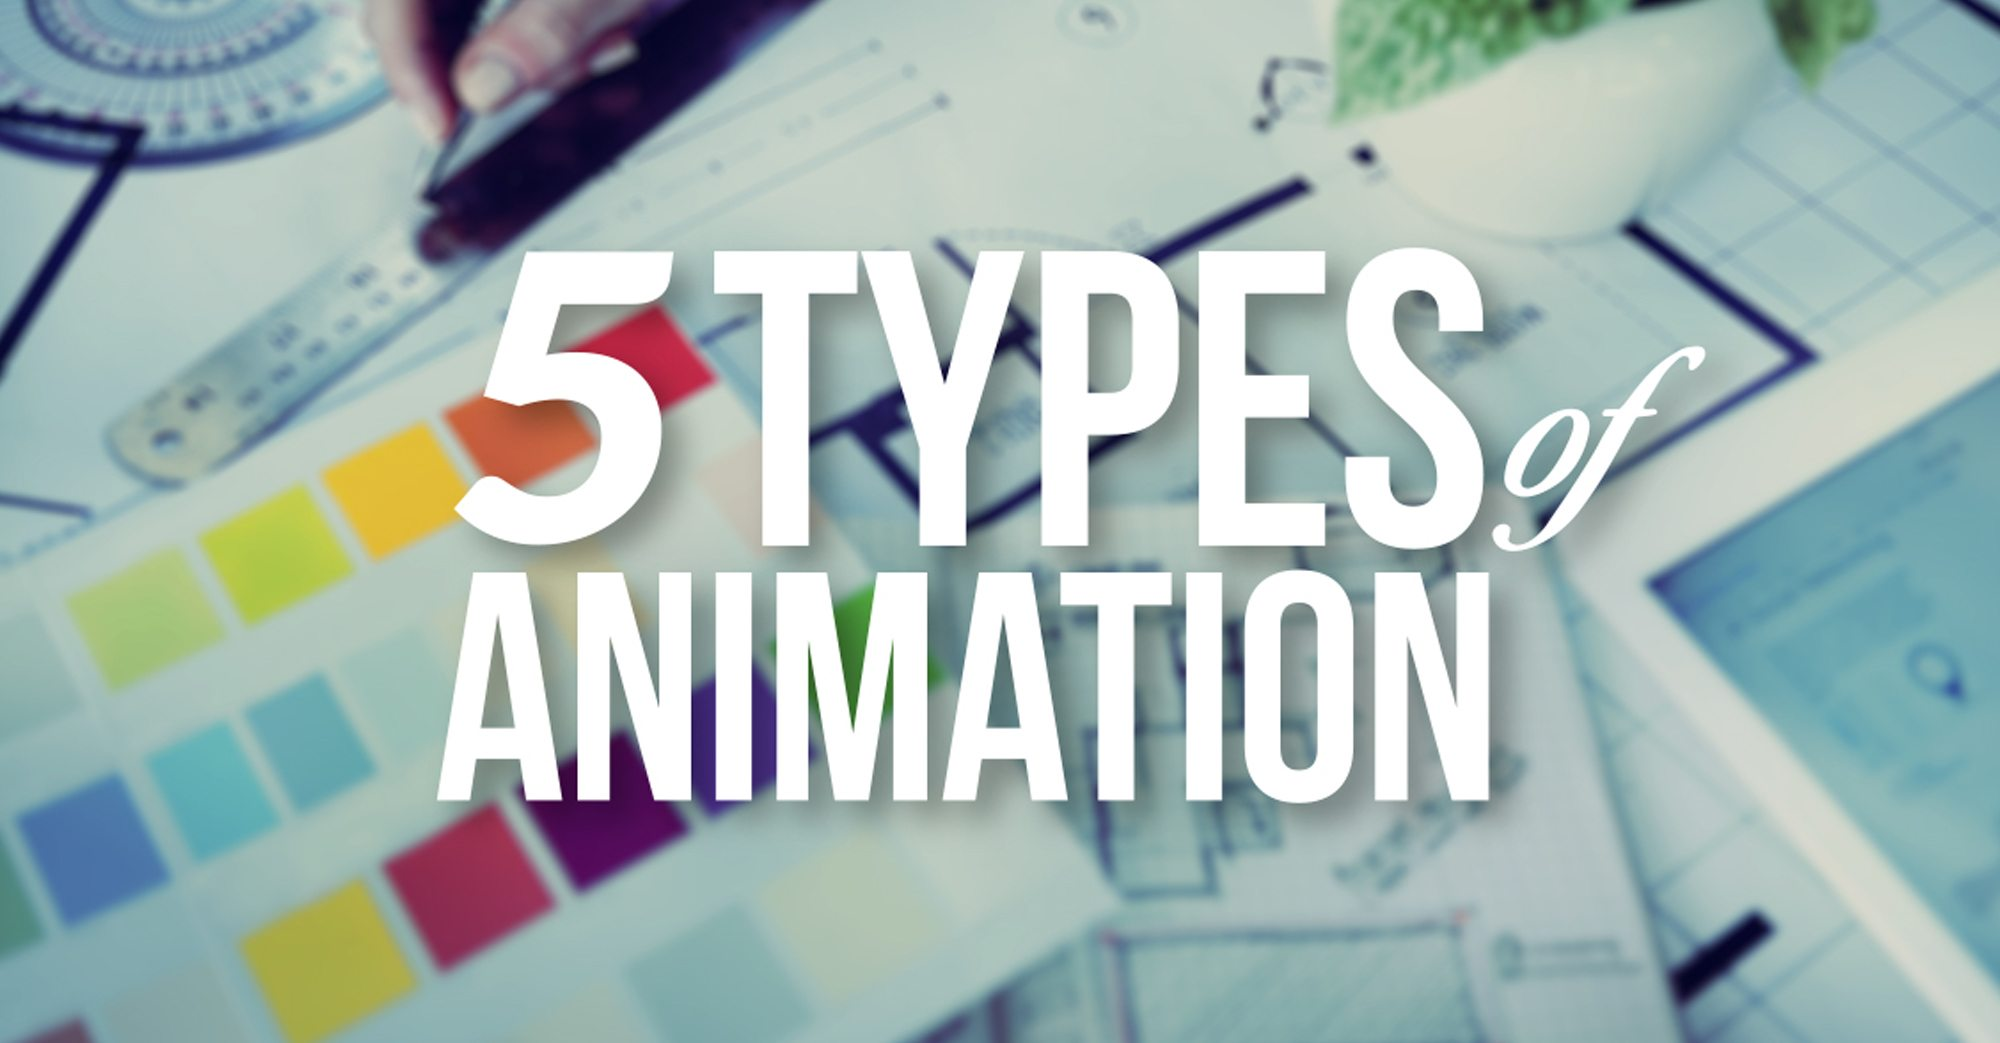 The 5 Types of Animation - A Beginner's Guide